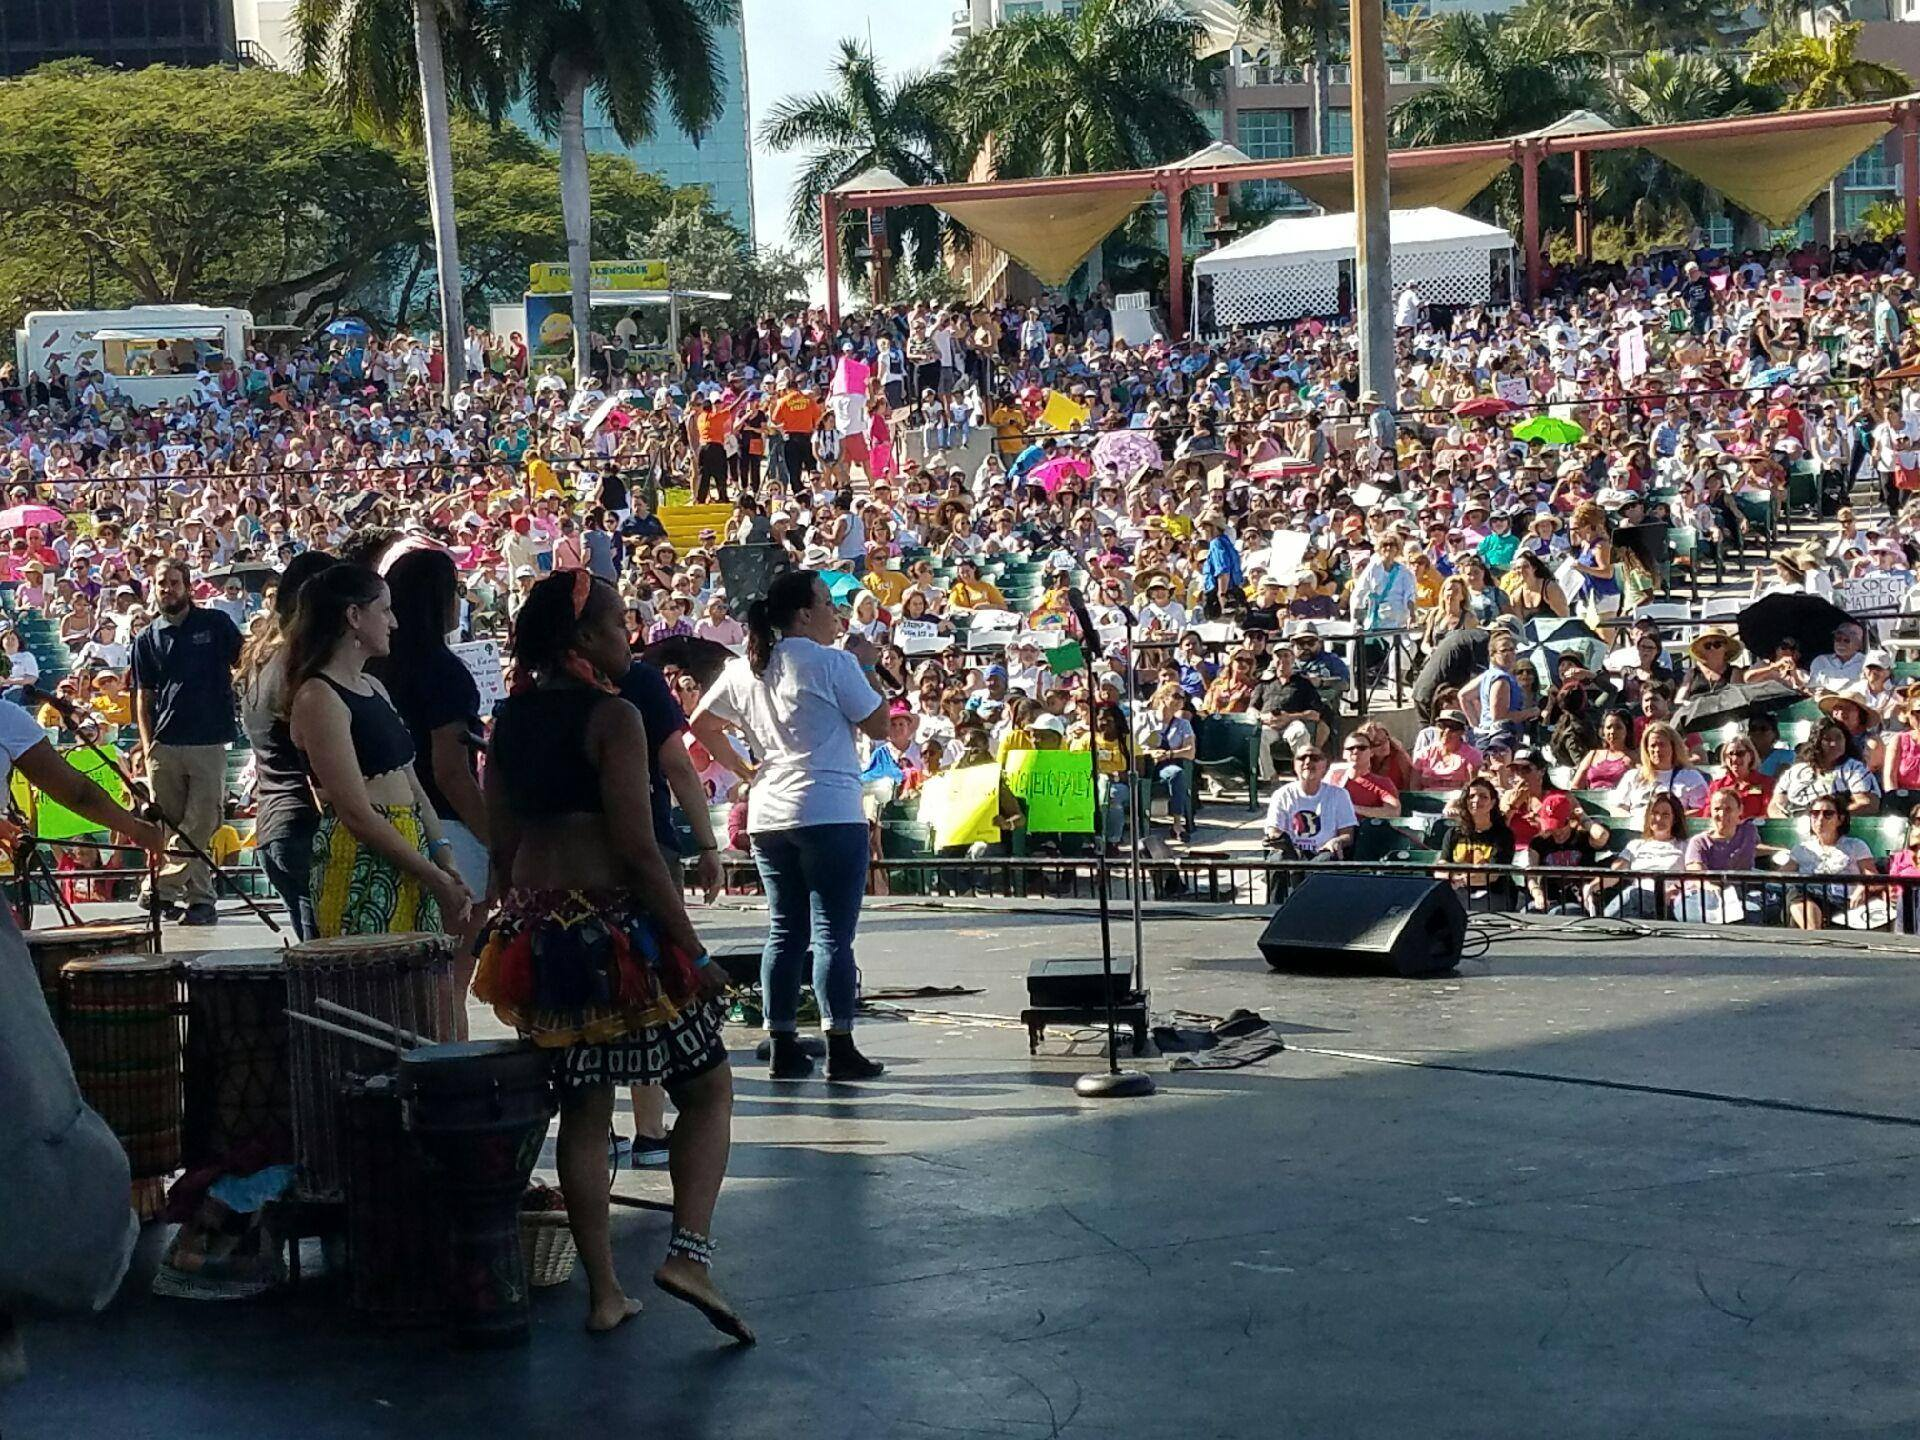 Women's Rally in South Florida, Downtown Miami.